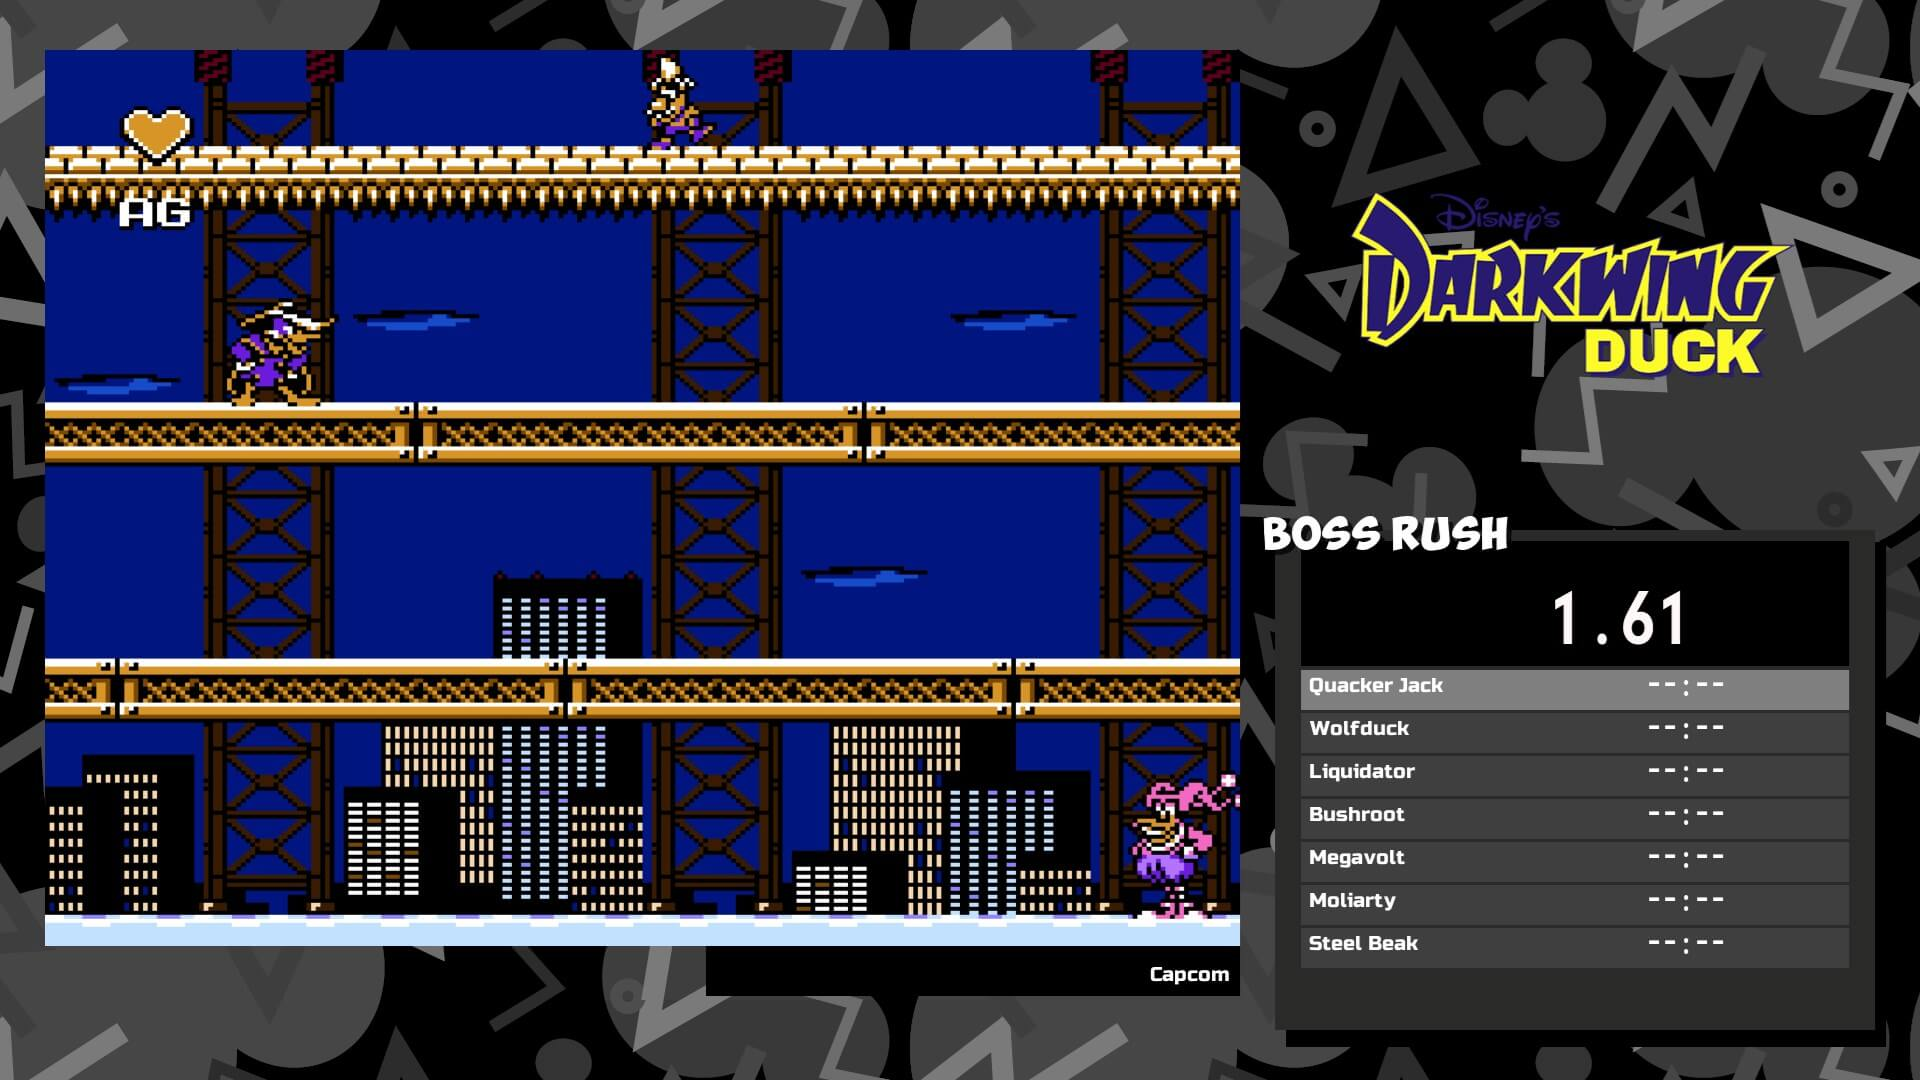 Boss Attack puts you in a series of battles against foes like Quackerjack here from Darkwing Duck.